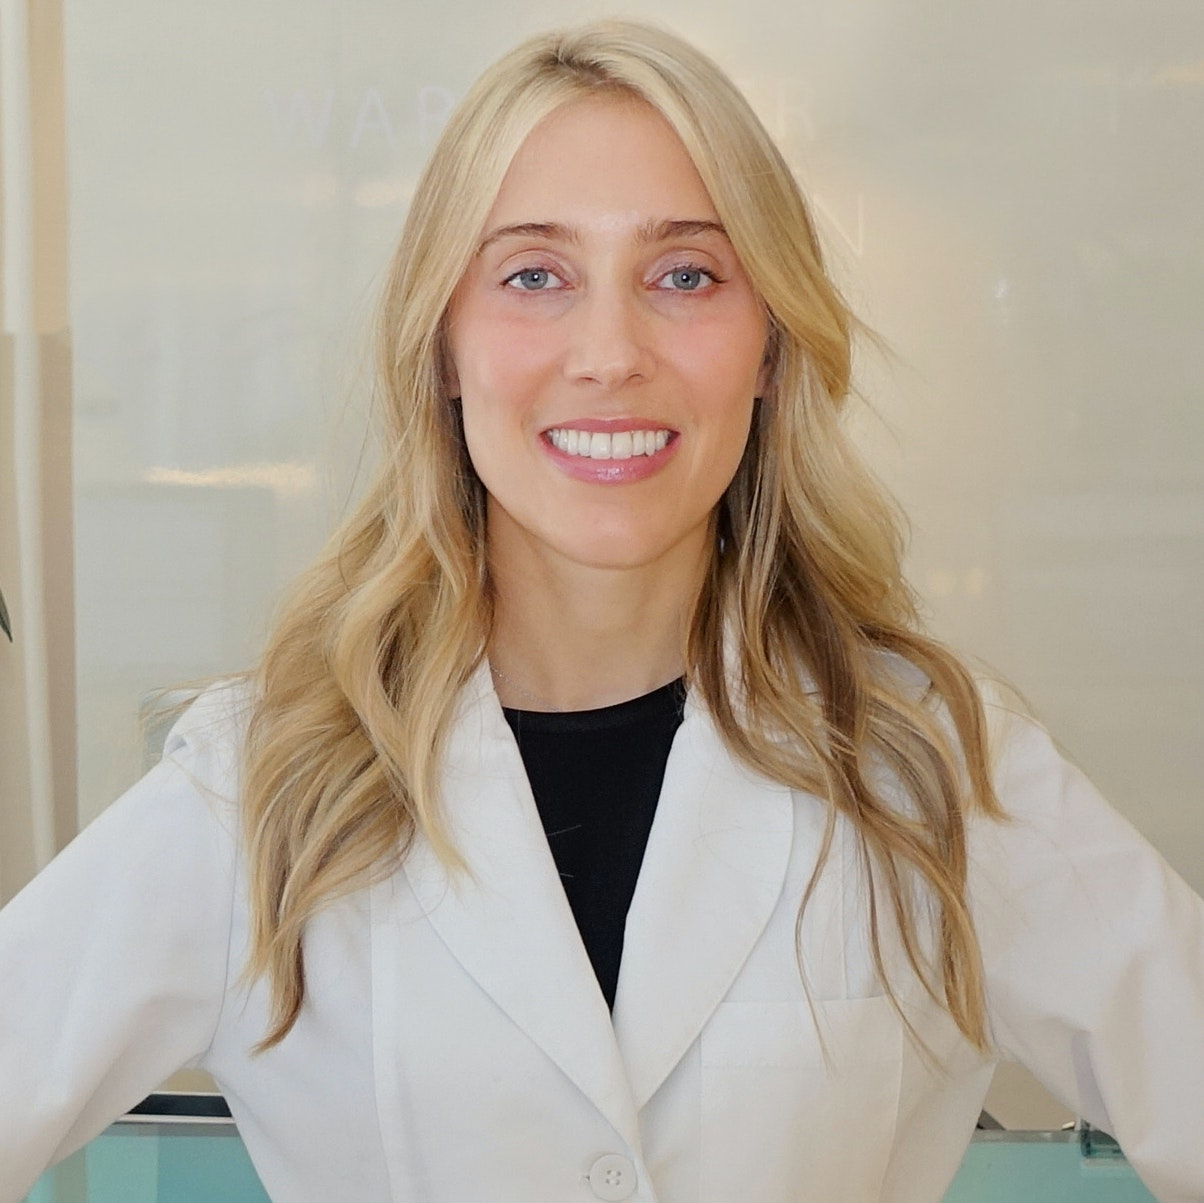 How to Be Happier and Sleep Well Every Night, According to NYC Derm Dr. Hadley King